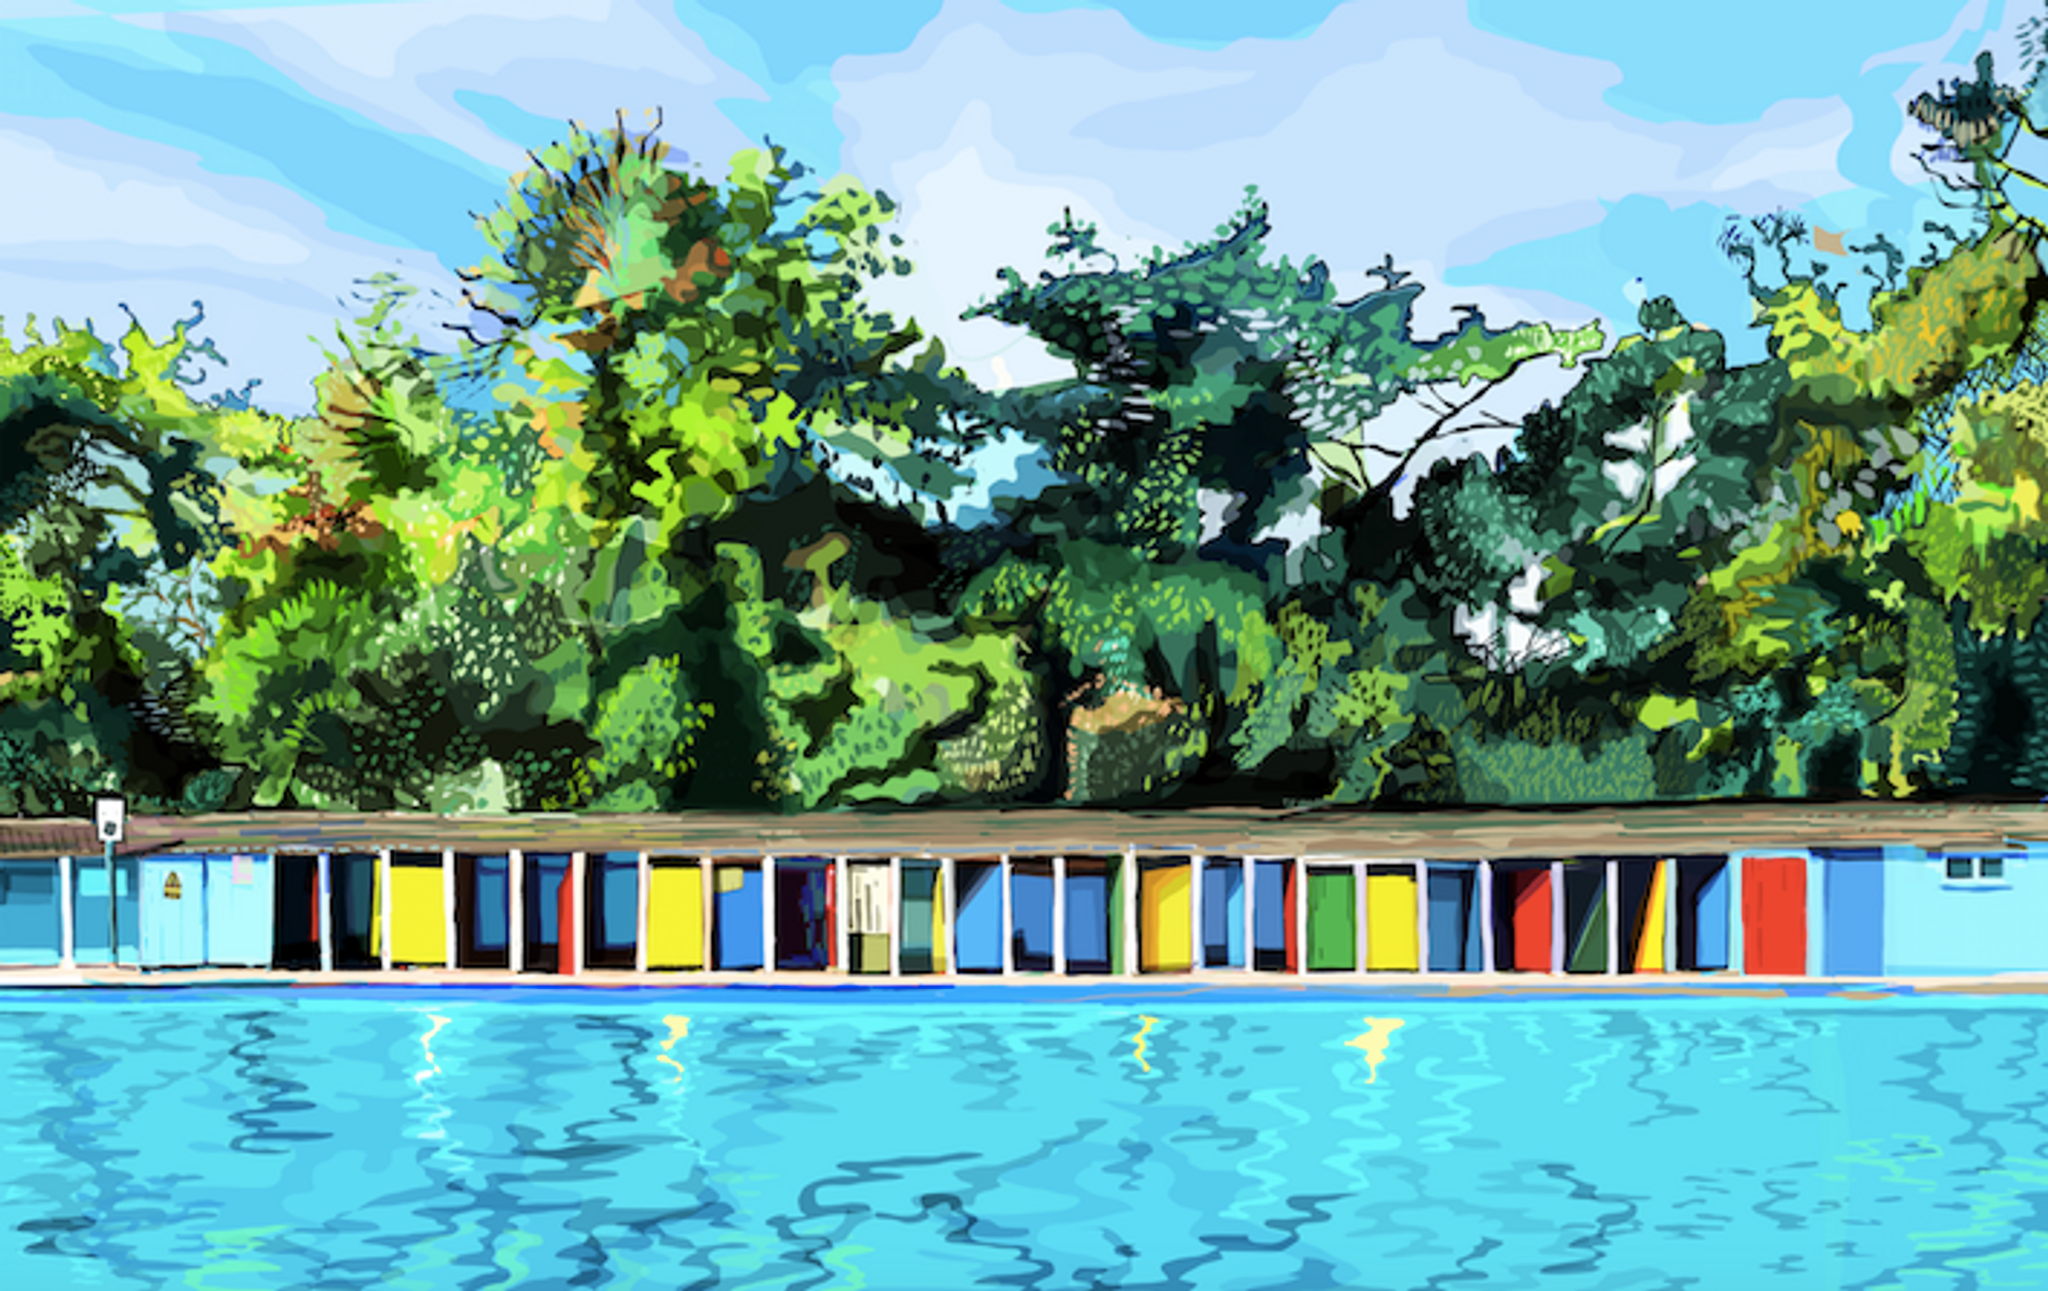 Tooting Bec Lido by Tomartacus